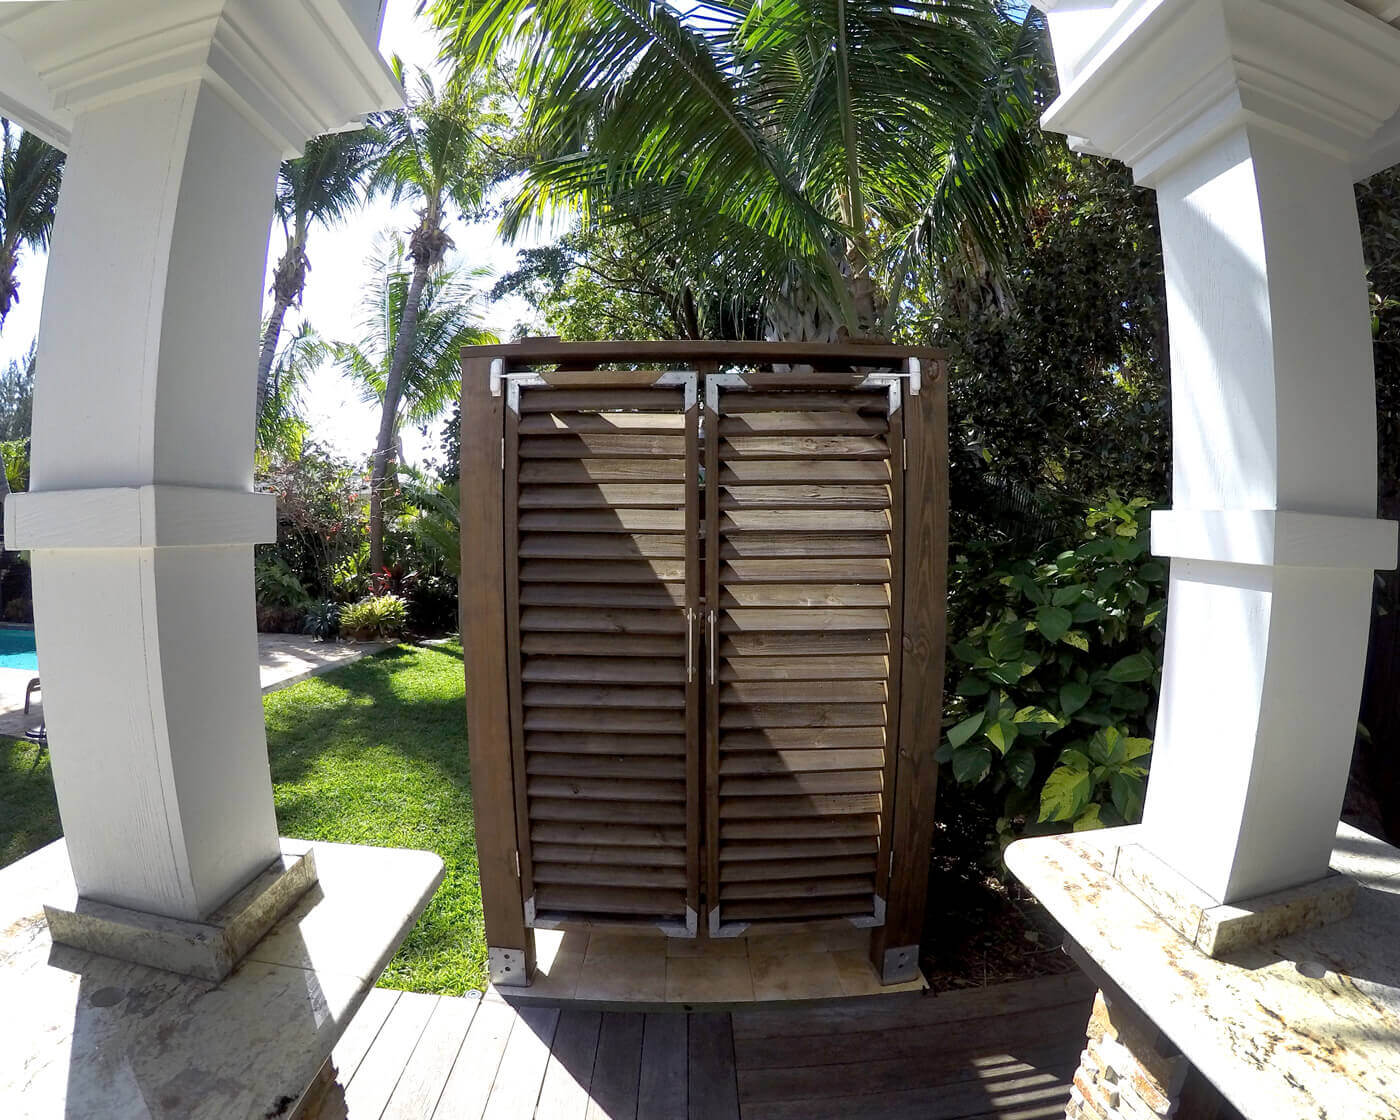 outdoor shower by a pool and columns of outdoor kitchen